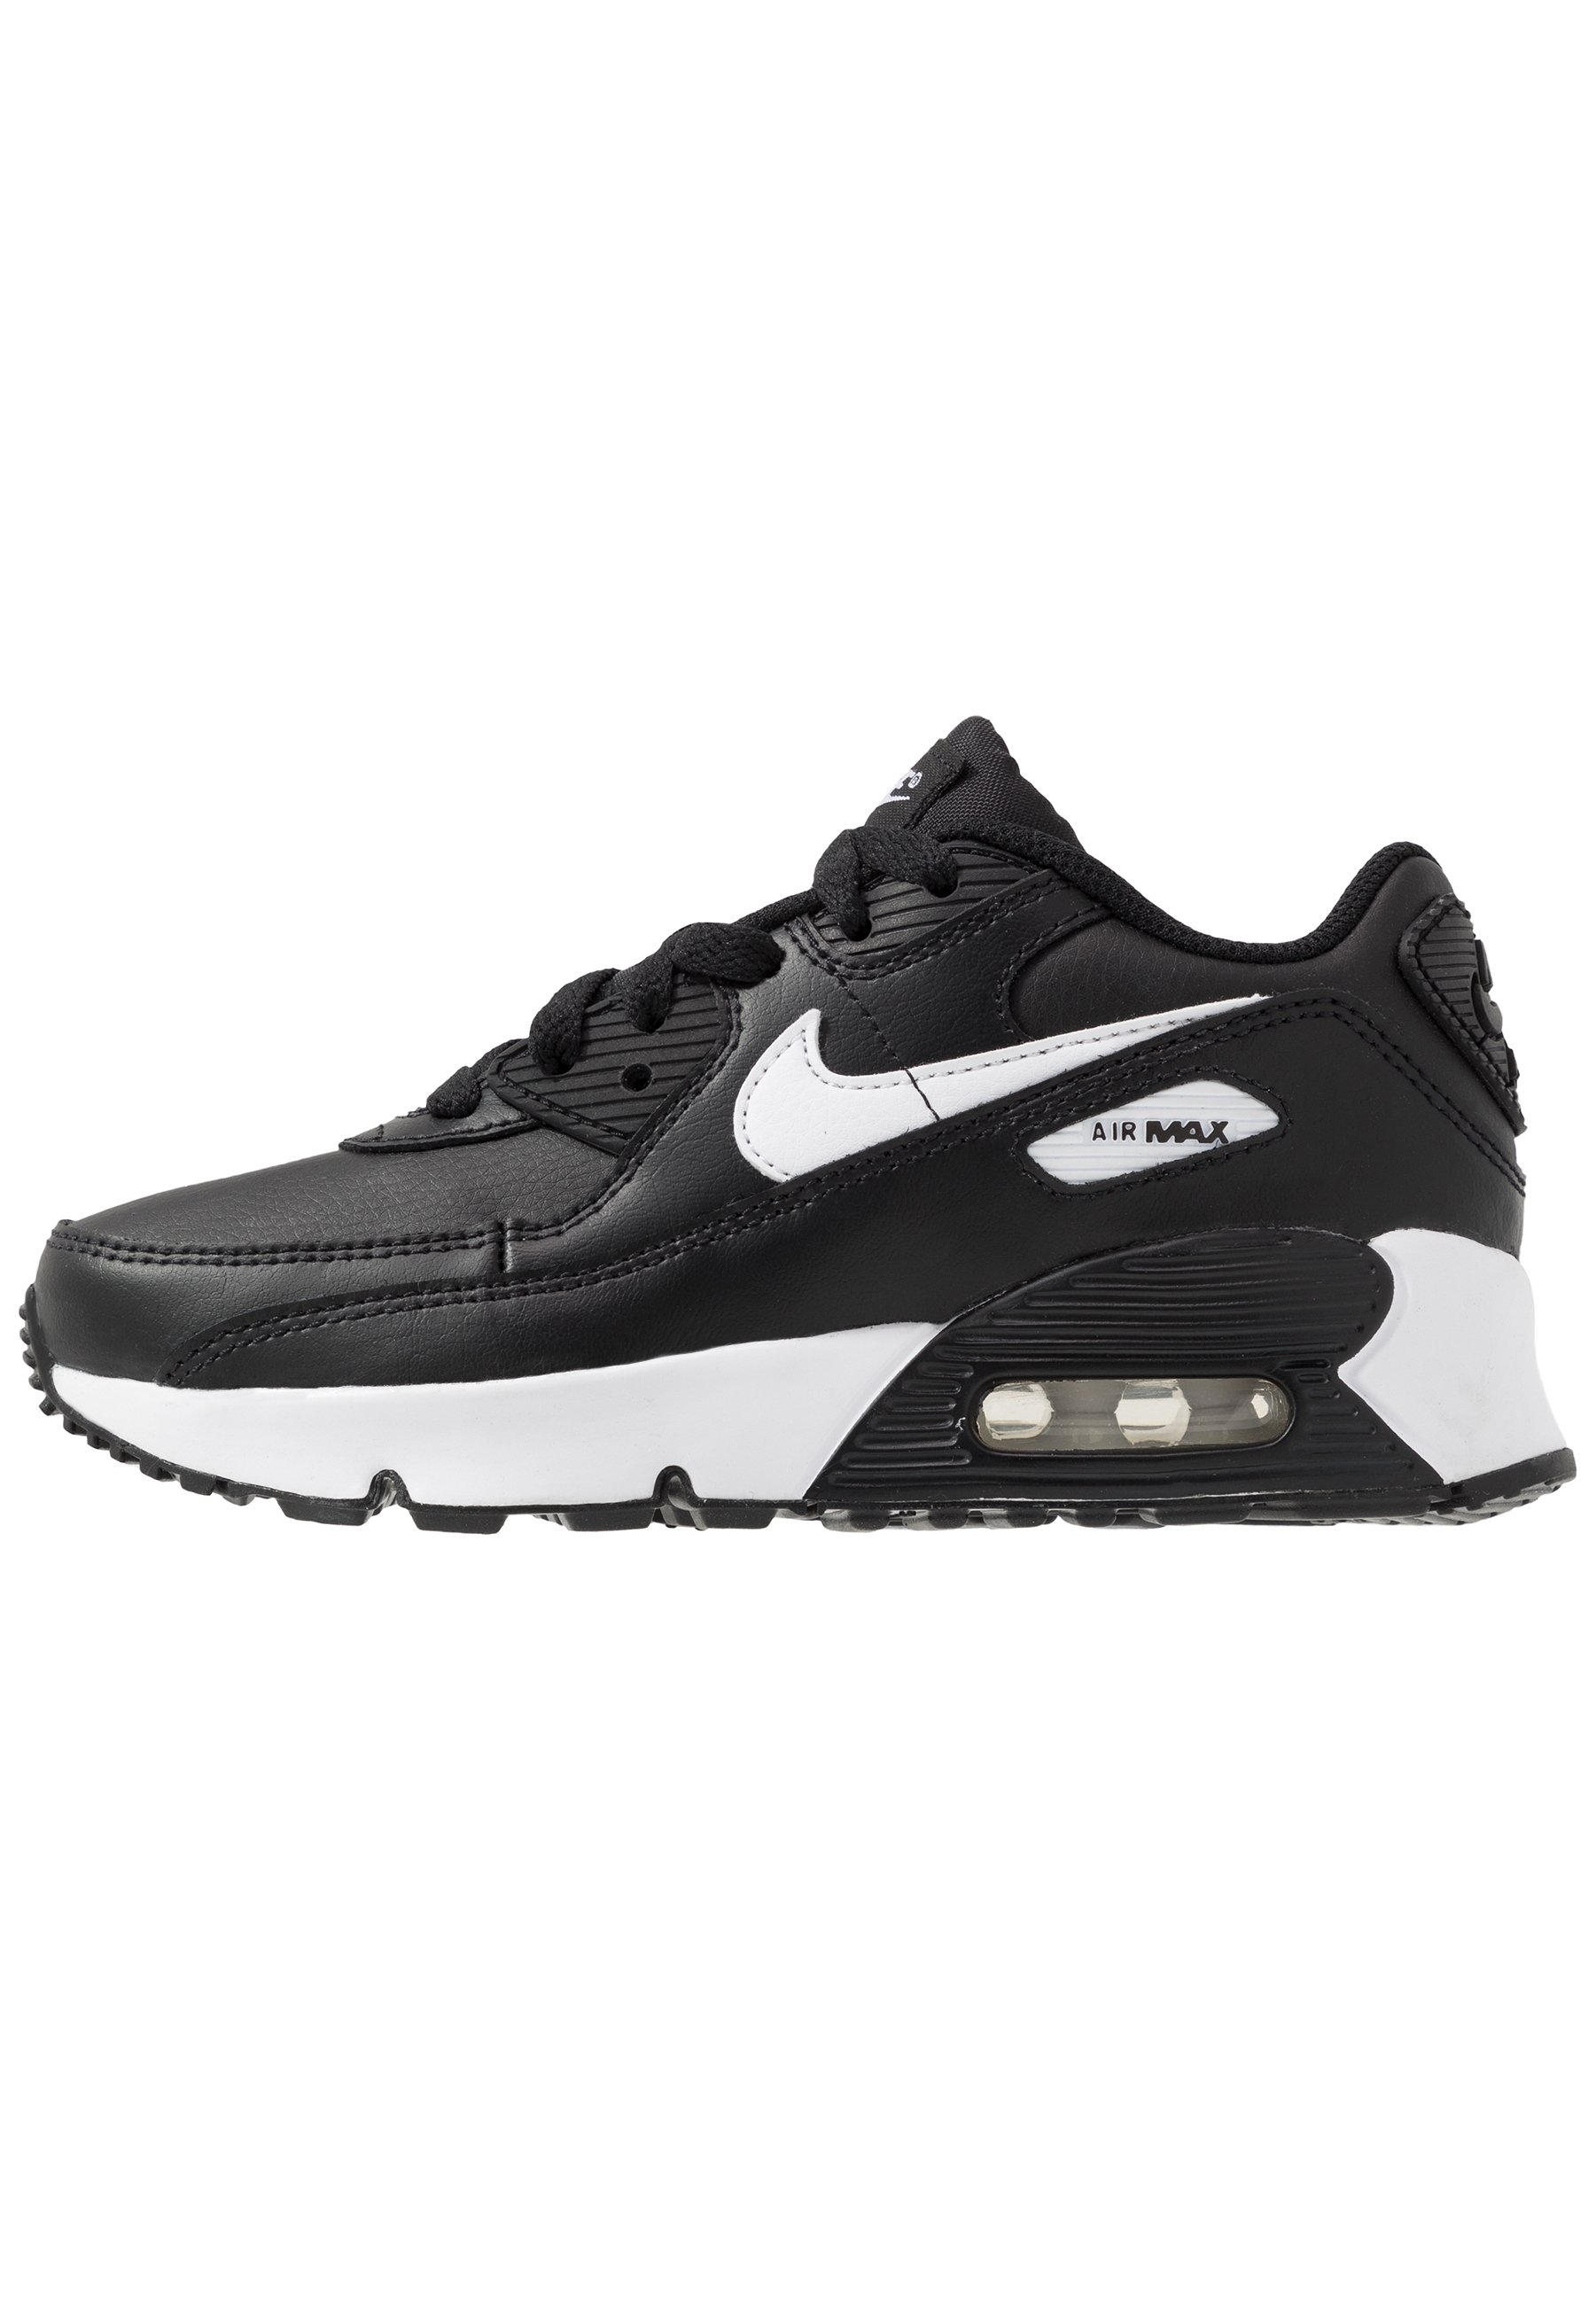 Nike Sportswear Air Max 90 - Sneakers White/particle Grey/light Smoke Grey/volt